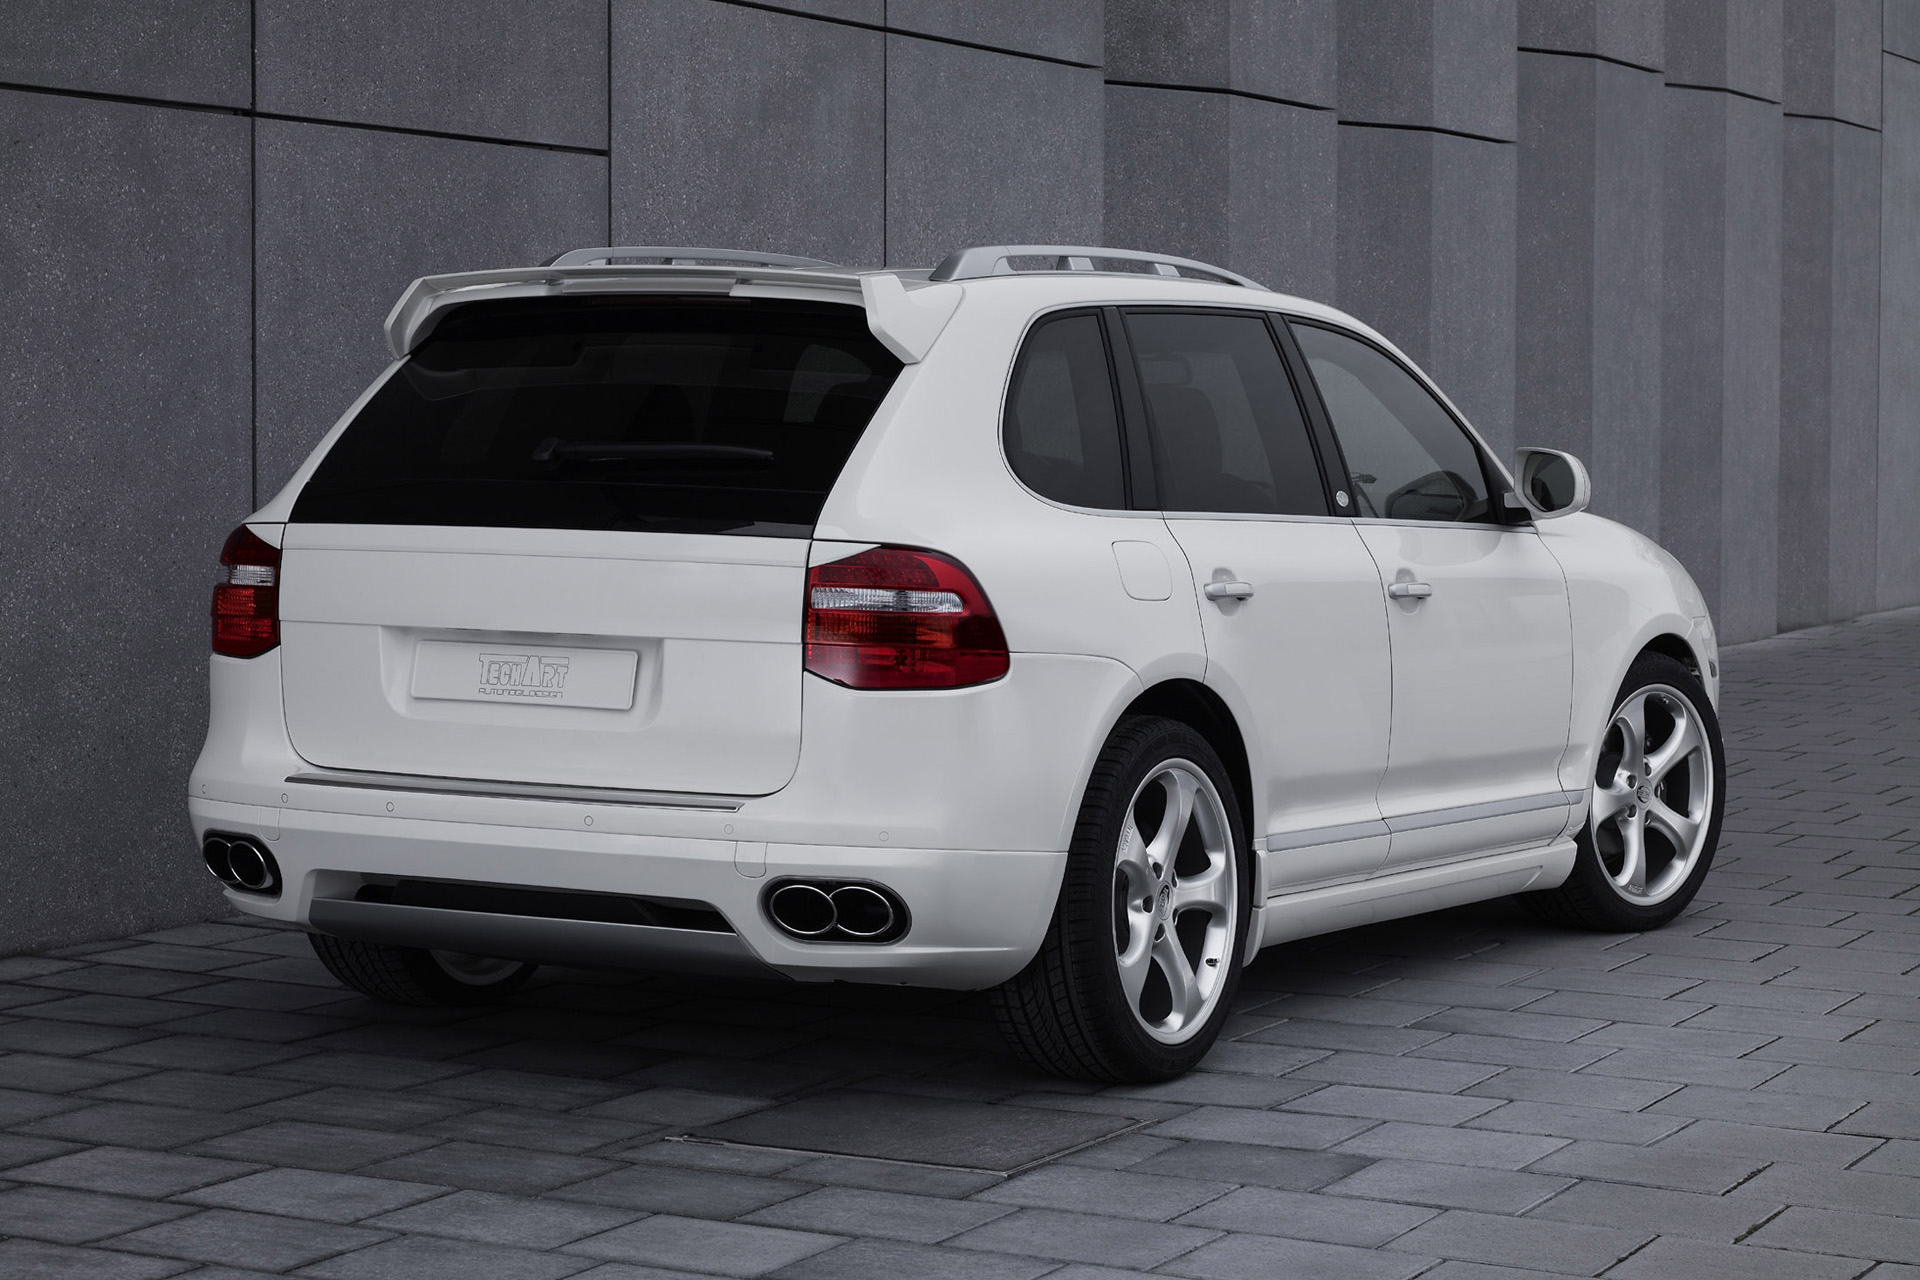 Techart Porsche Cayenne Diesel photo 66858